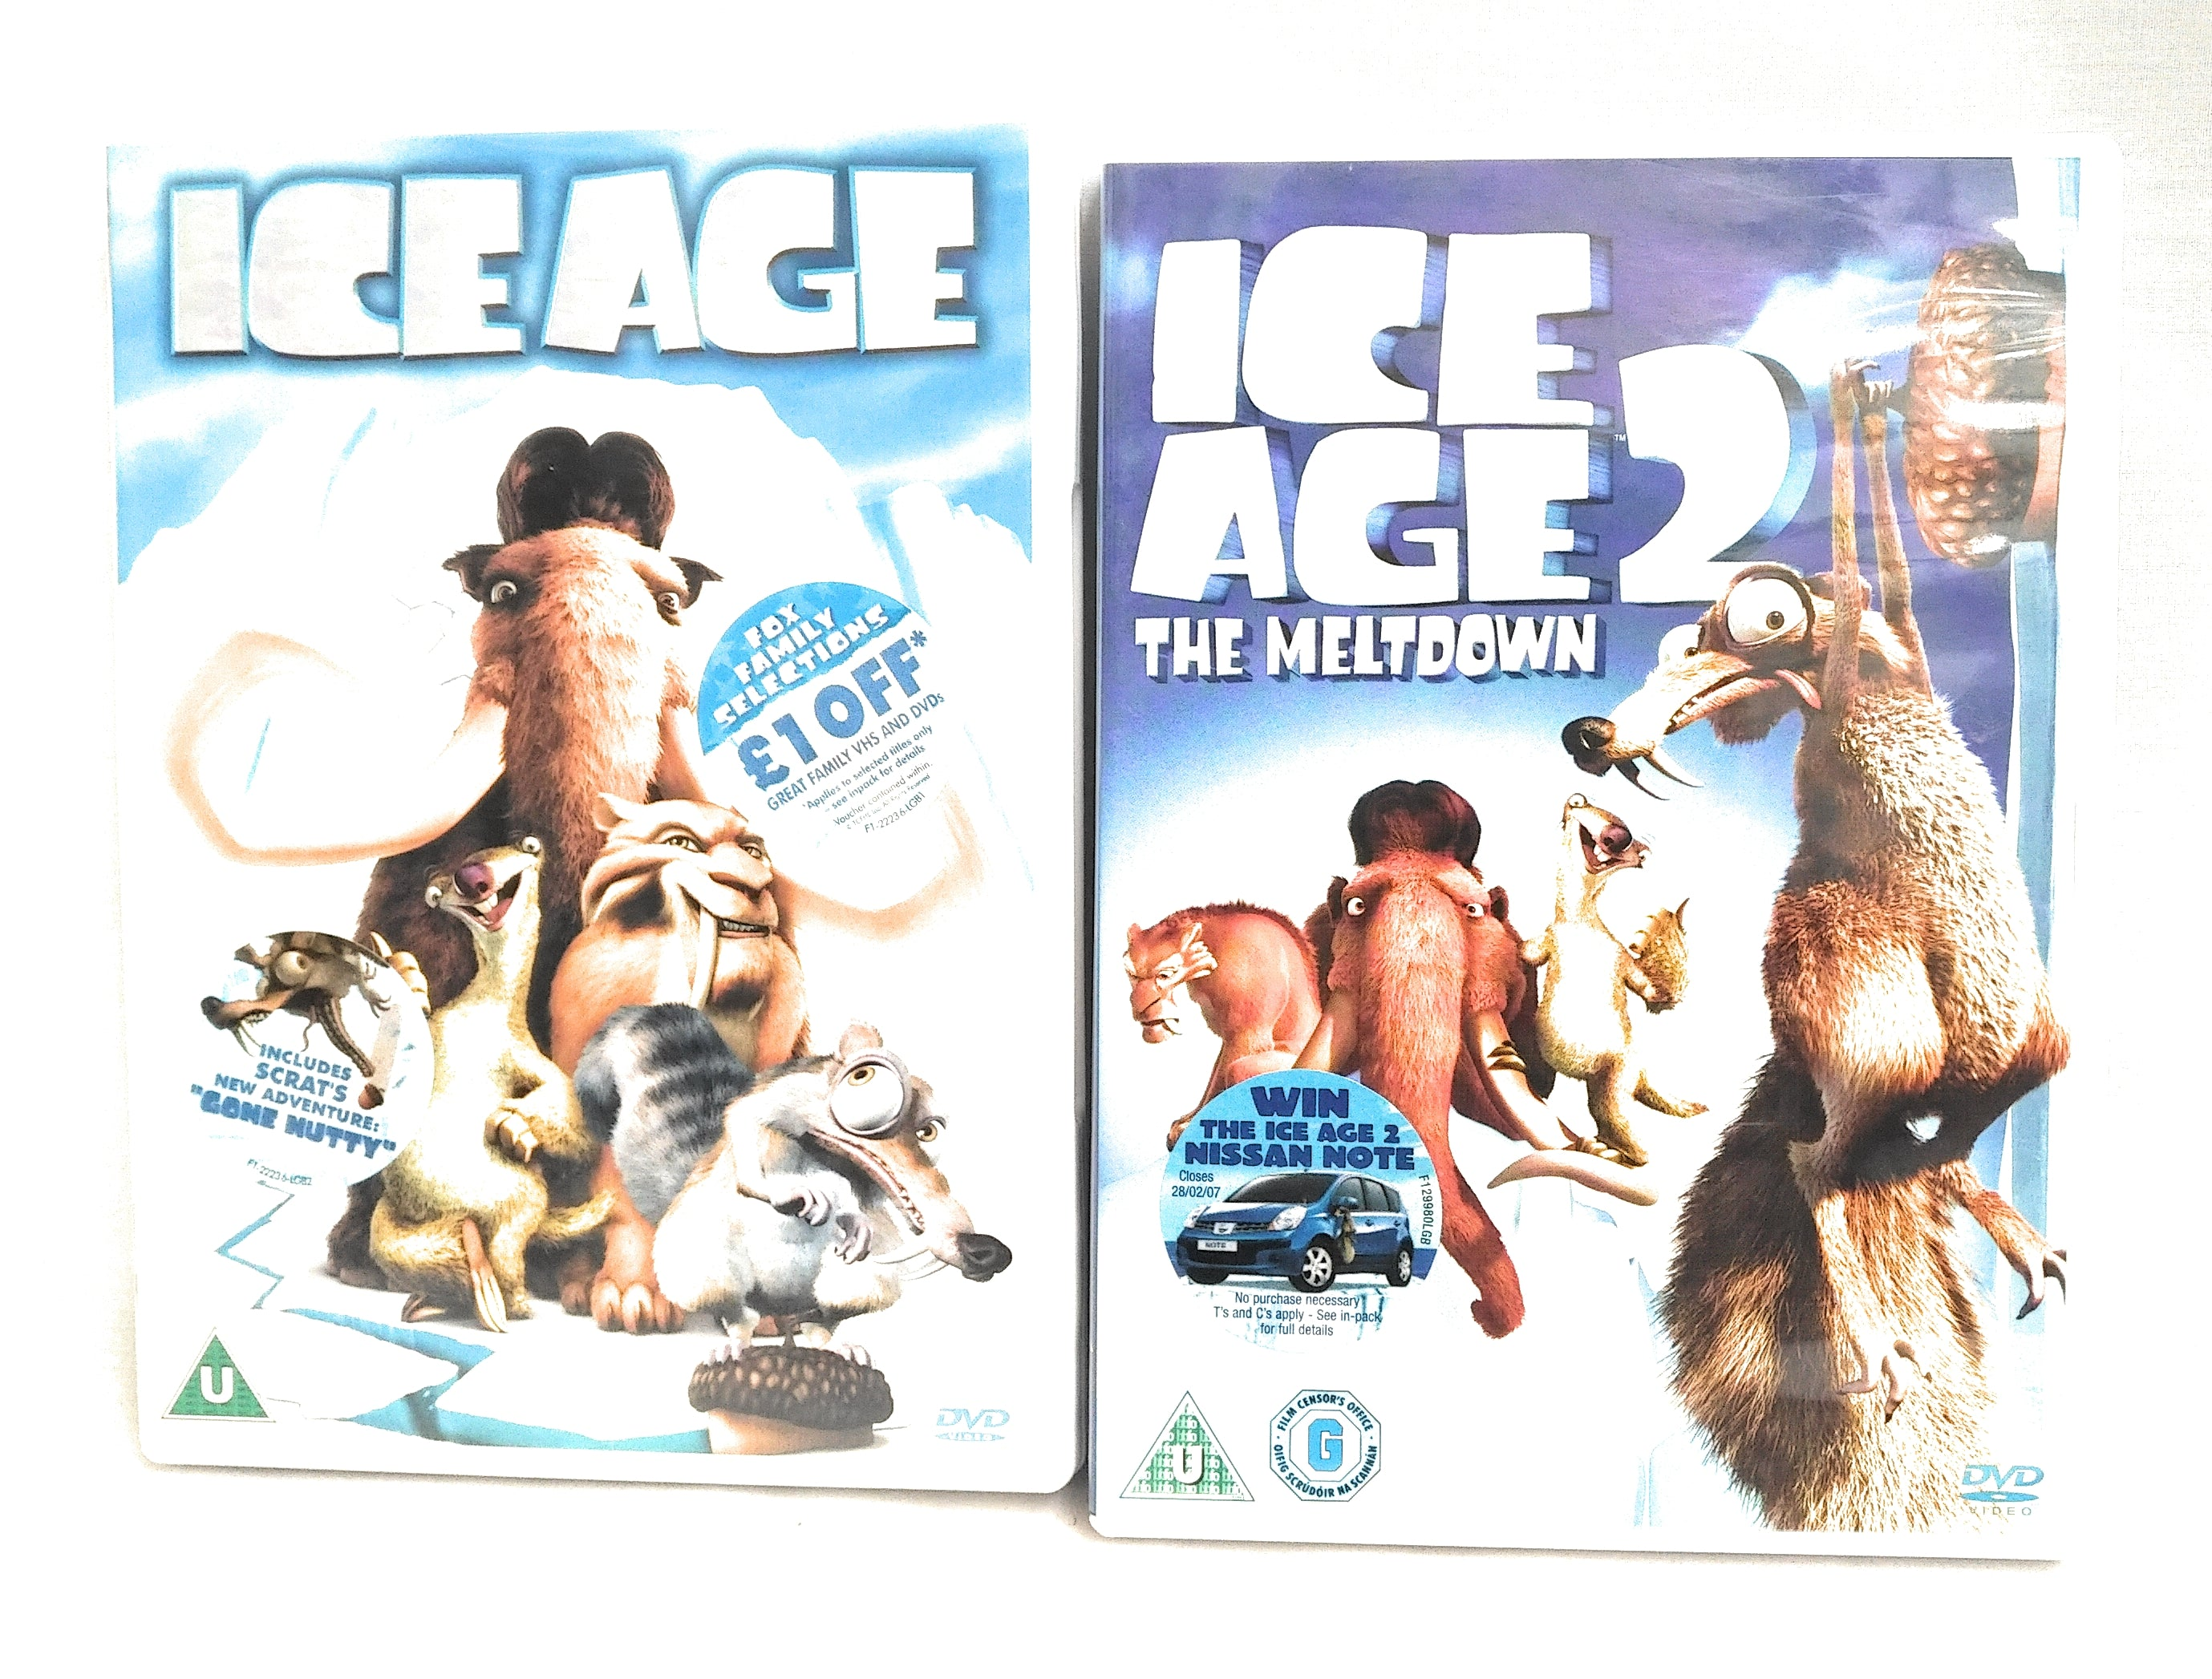 Ice Age 1 And 2 DVD The Meltdown – sap-media